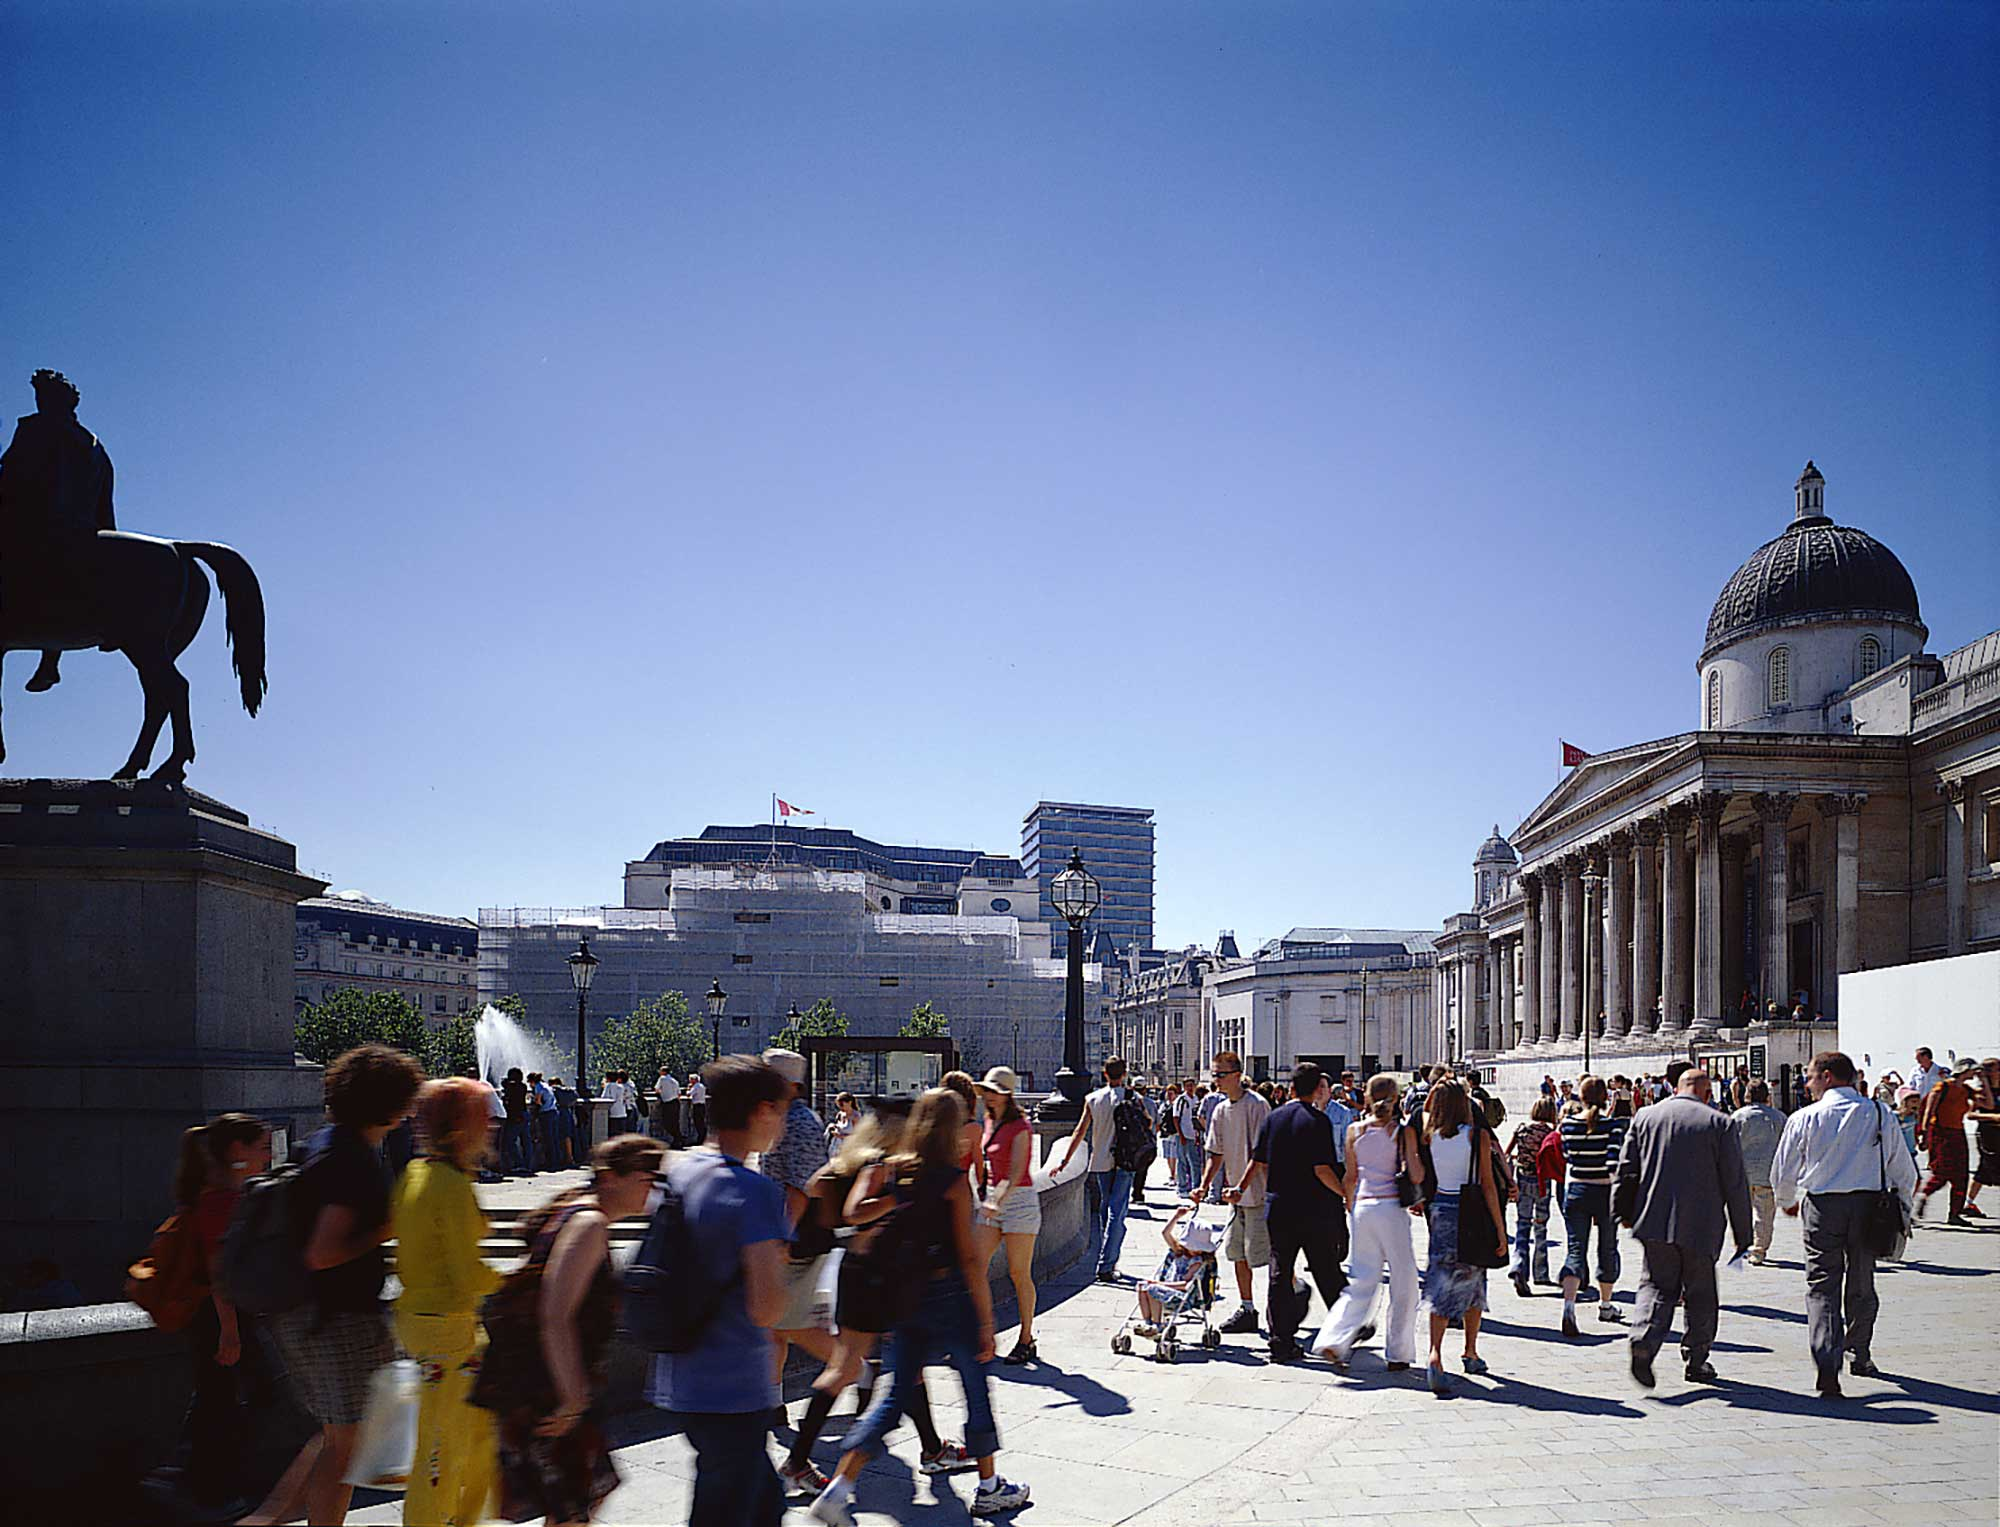 Trafalgar Square after its transformation. Credit Nigel Young, Foster + Partners